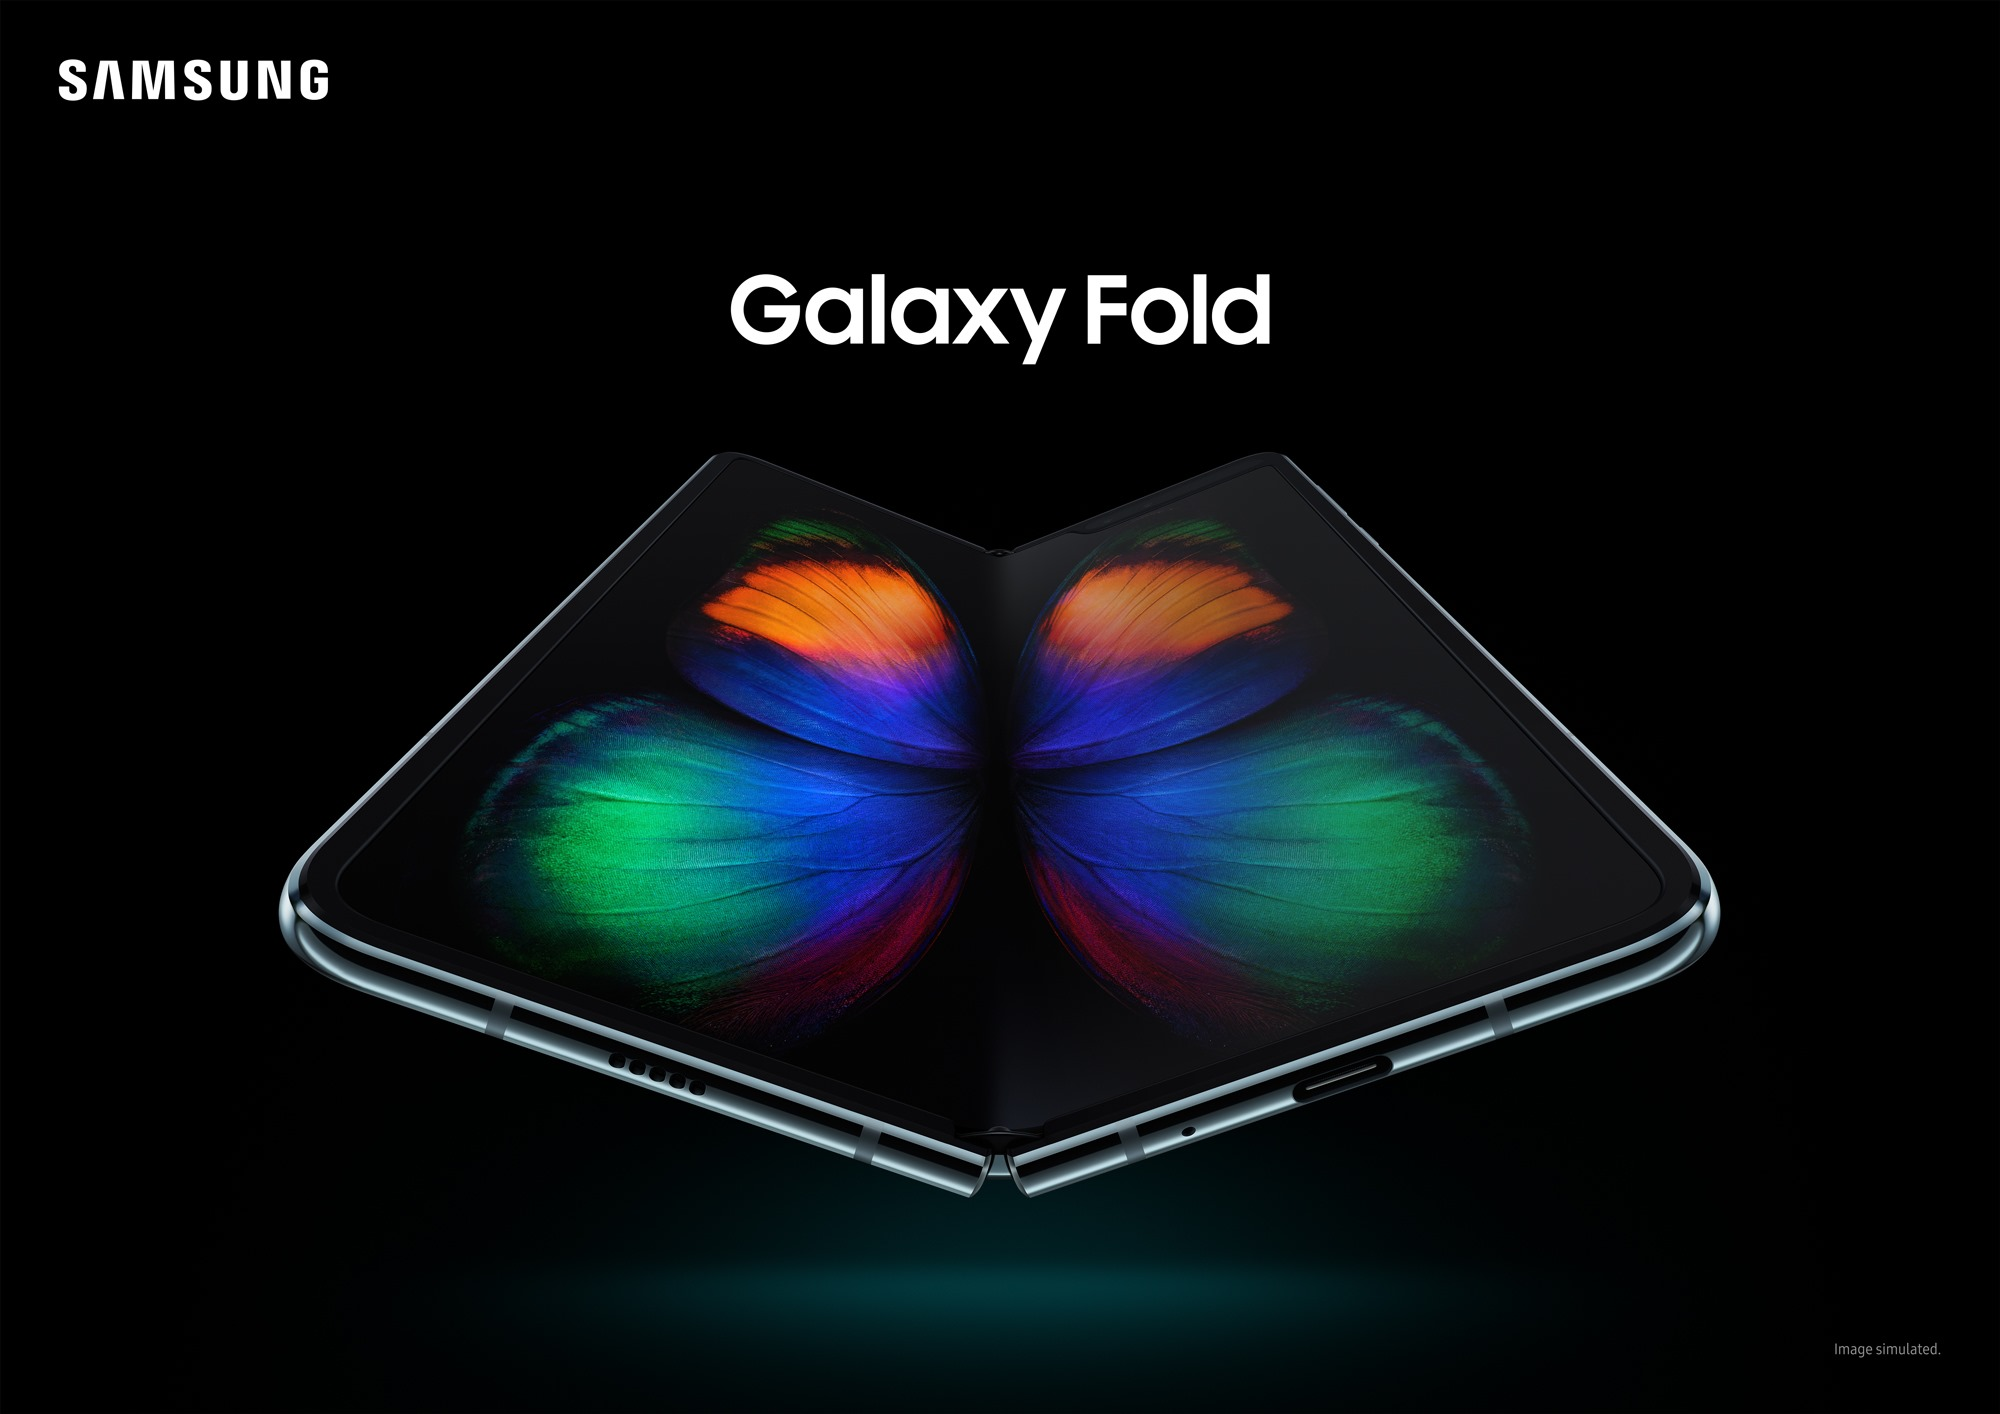 Reshape Your Mobile Experience with the Exclusive Samsung Galaxy Fold